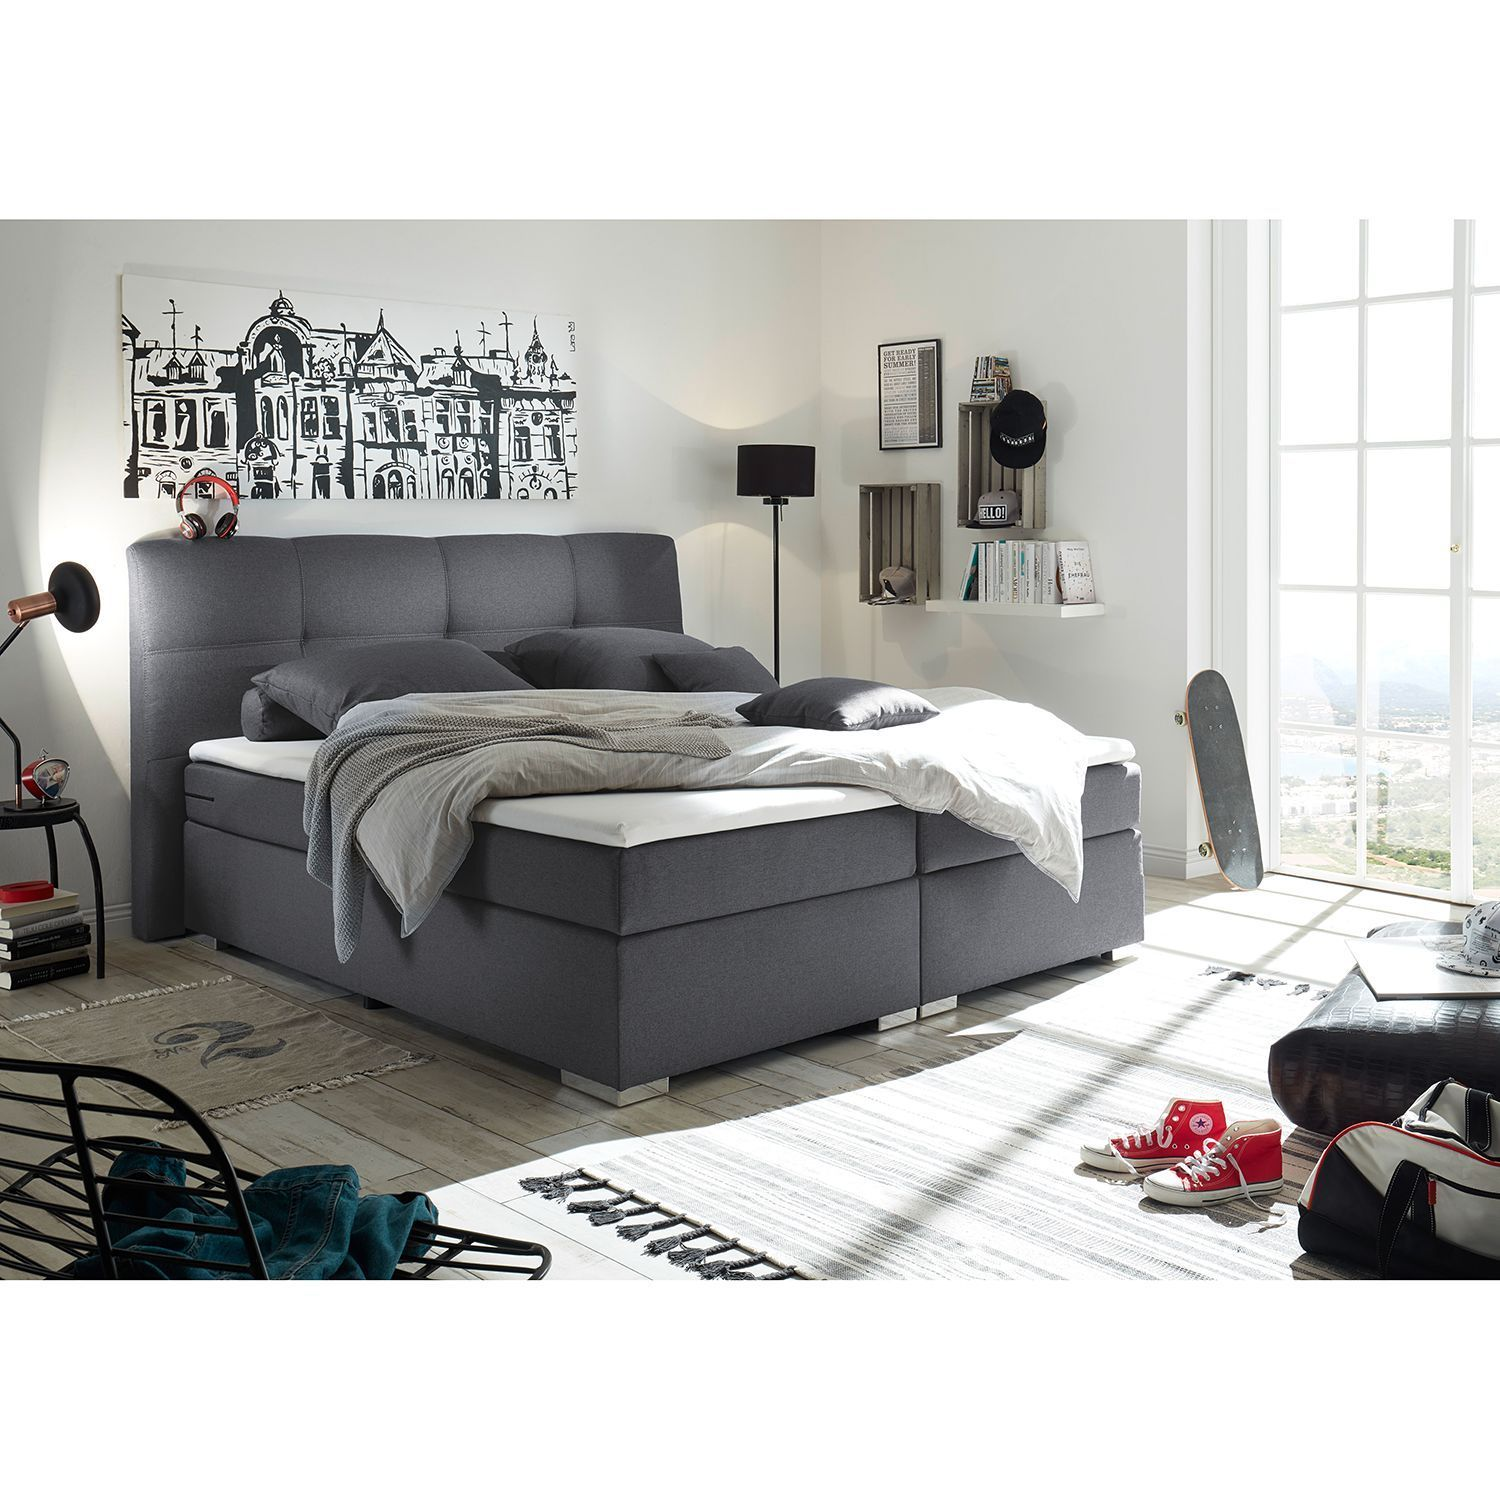 Fredriks Boxspringbett Marangaroo 180x200 Cm Kunstfaser Anthrazit Mit Matratze Oberseite In 2020 Luxury Bedroom Design Home Decor Styles Home